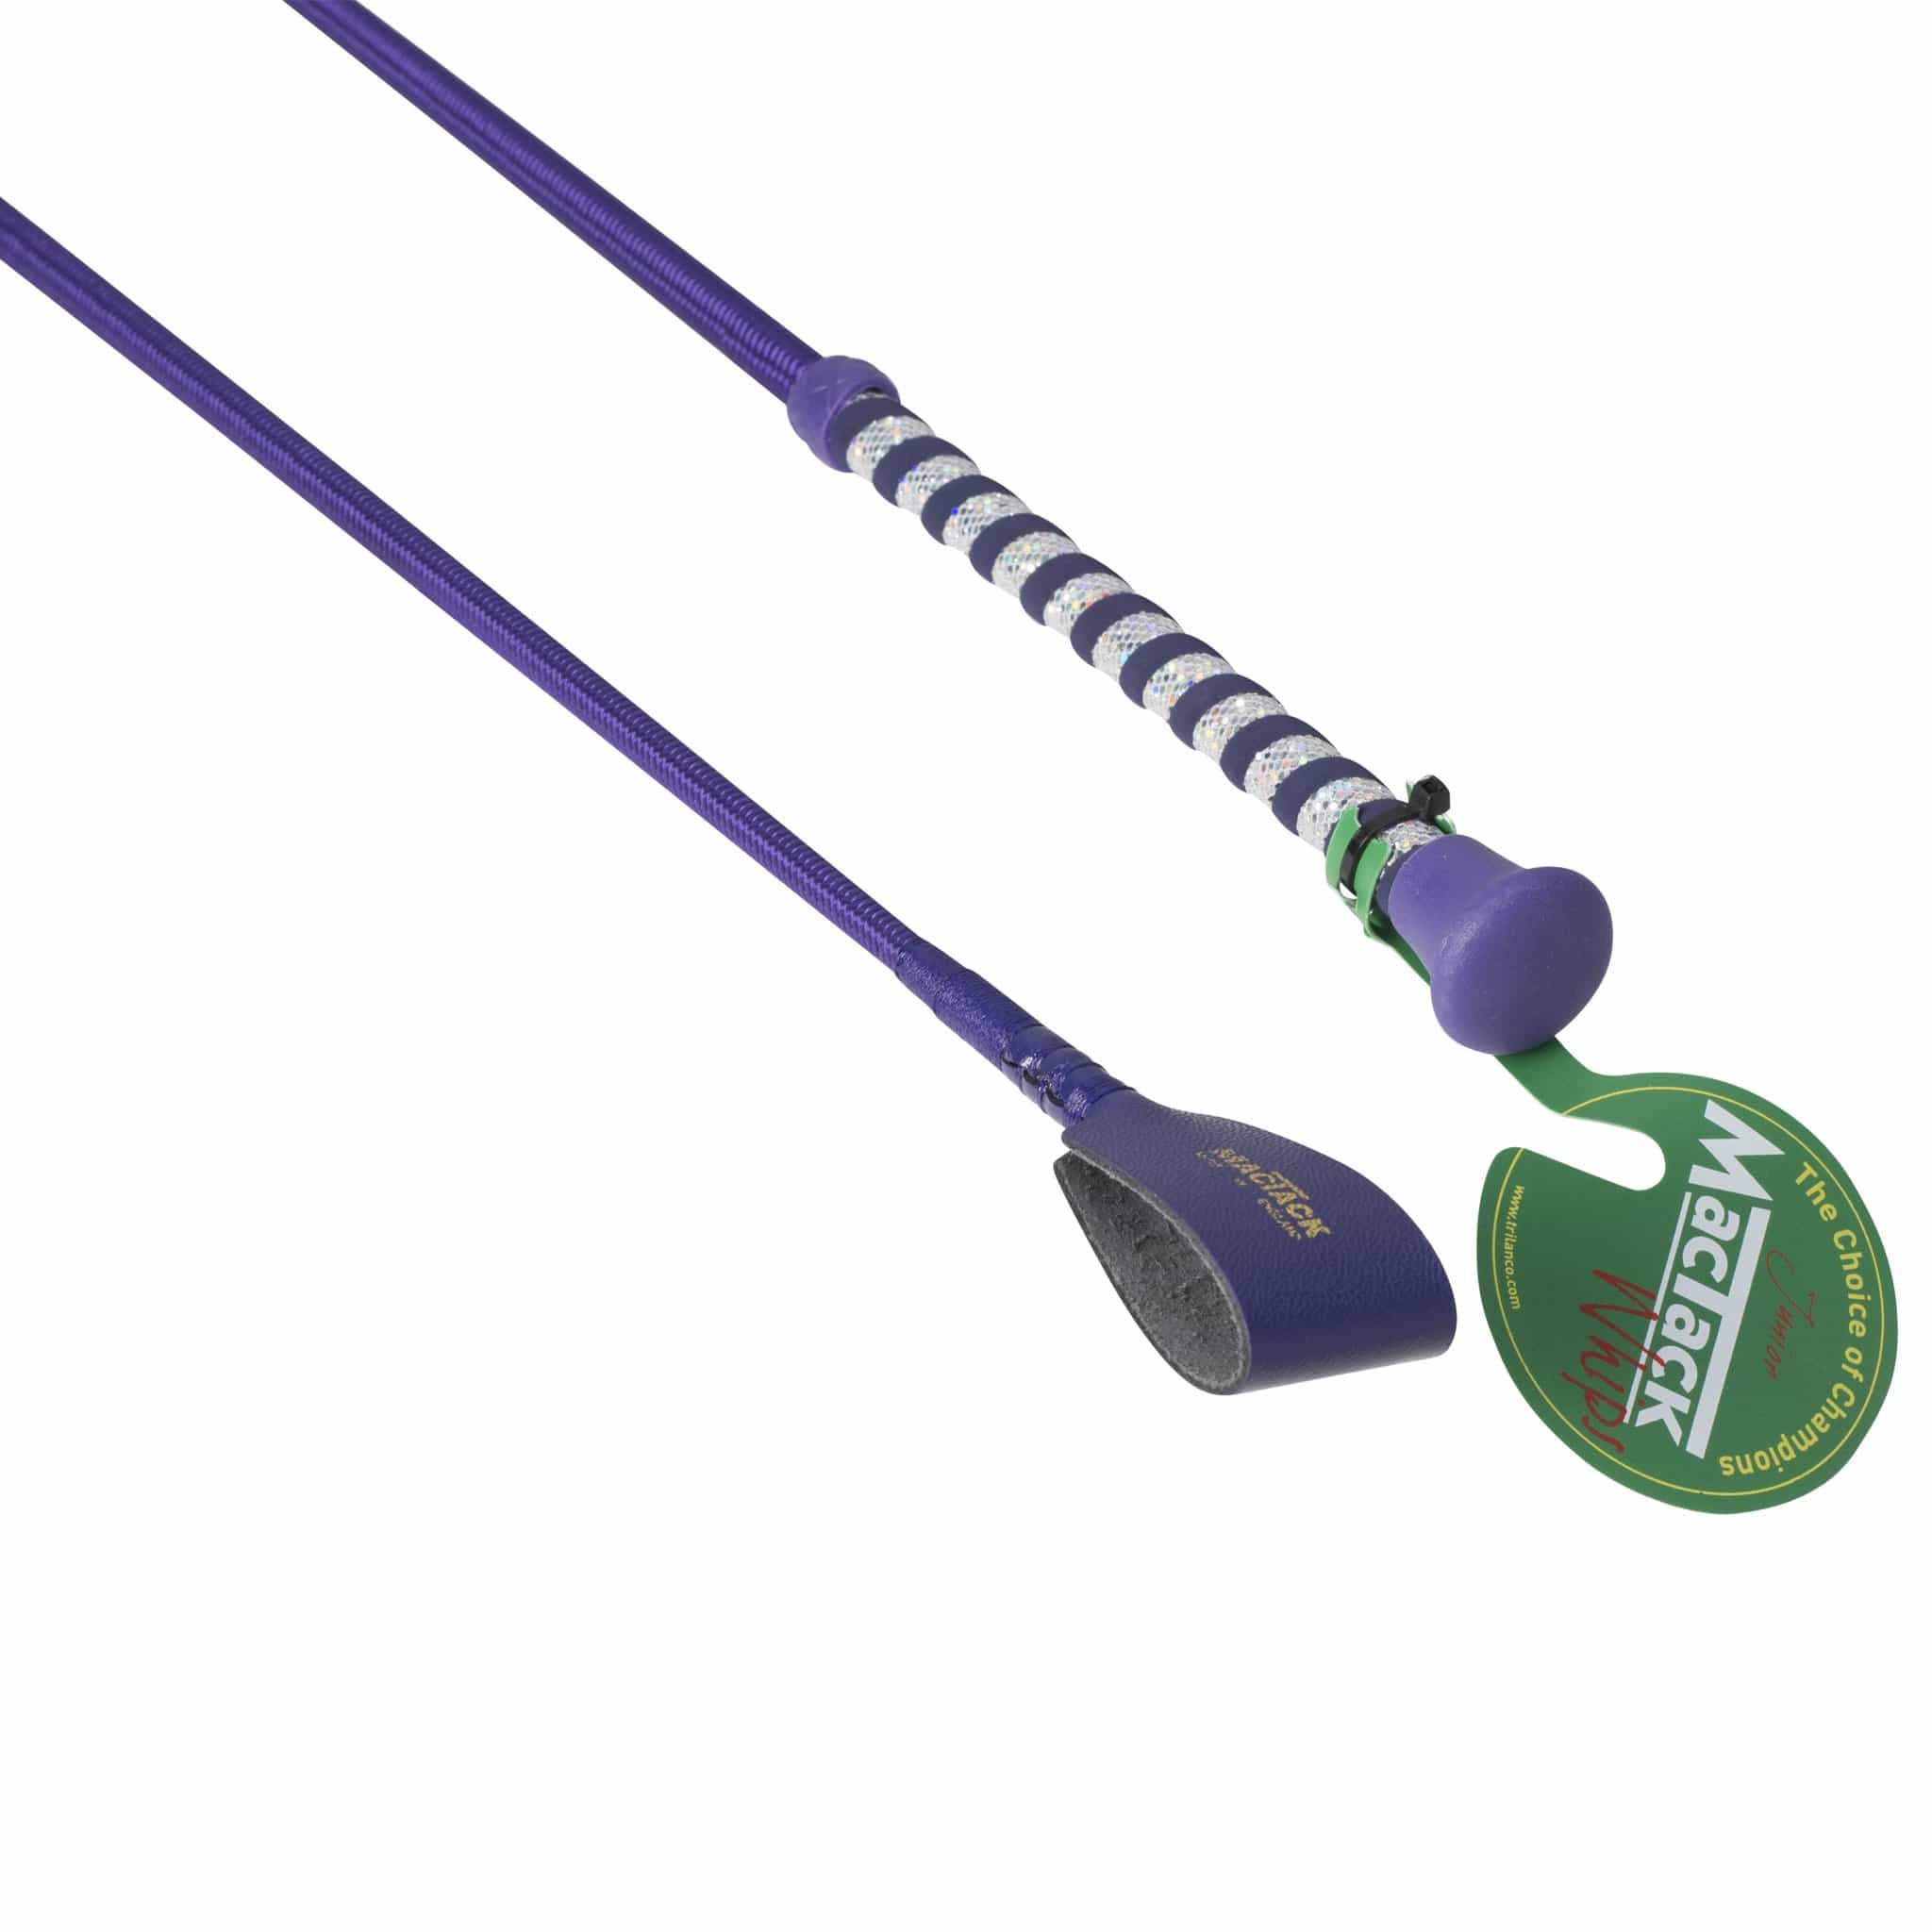 Mactack Children's Riding Whip with Glitter Handle and Keeper in Purple